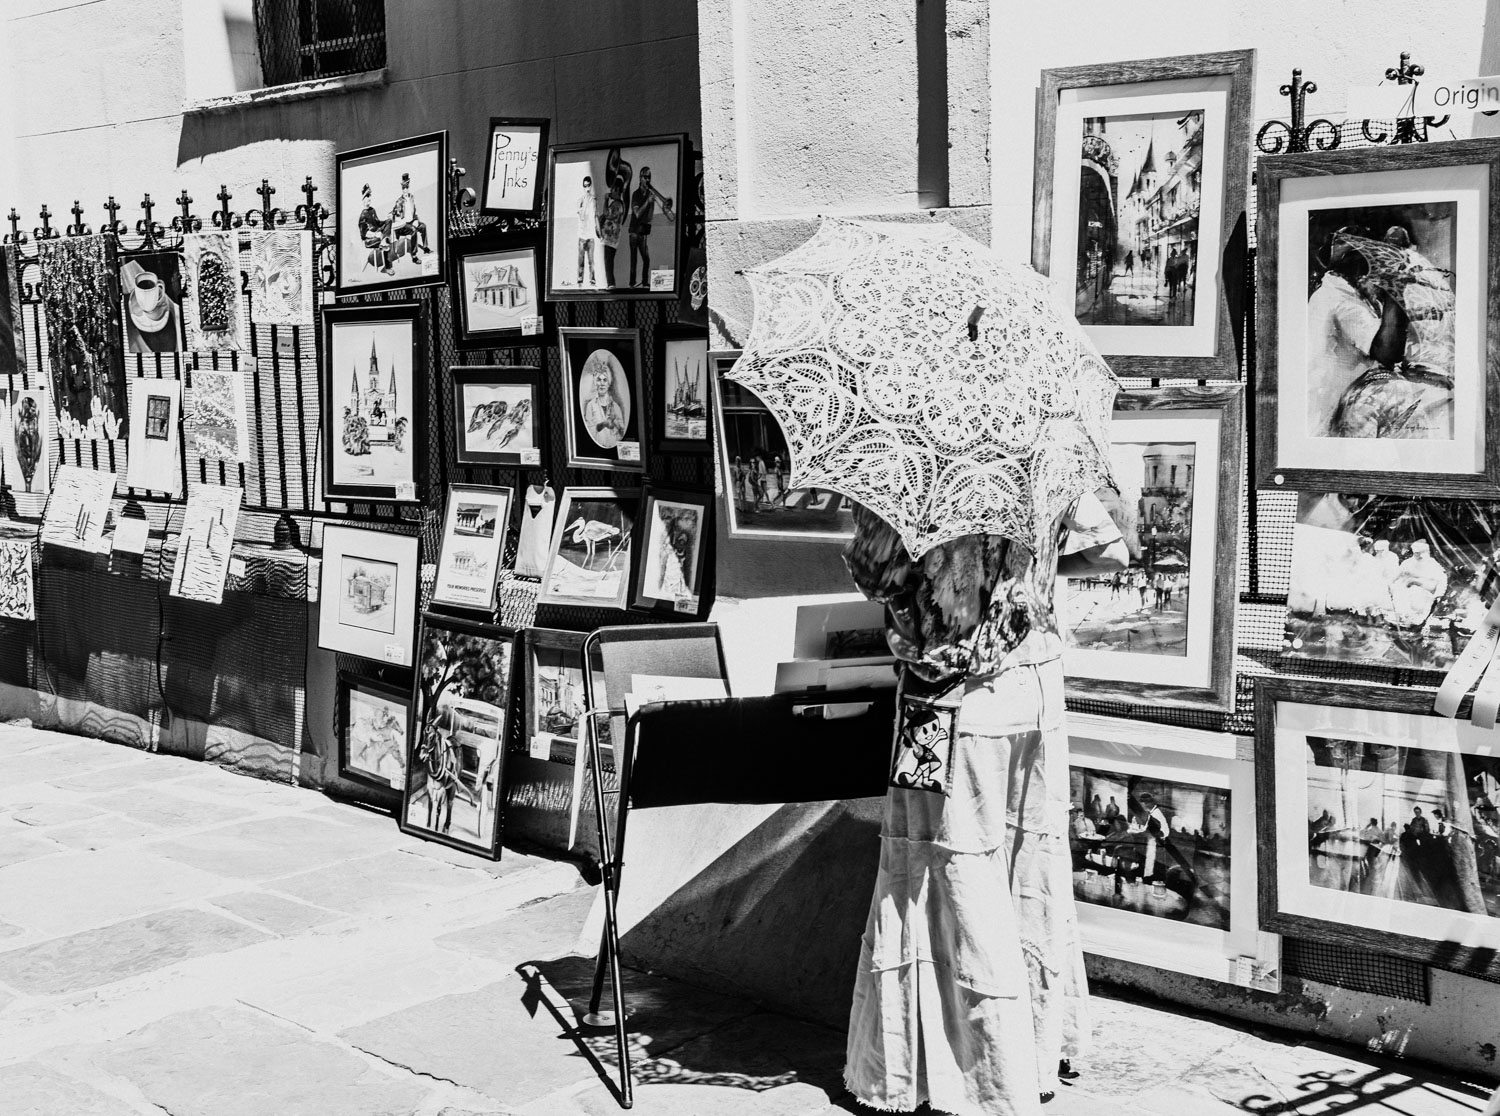 I was captivated by this woman and her umbrella as she perused paintings during the Pirate's Alley Art Contest display. What I soon realized was that she was looking through eventual winner Young Allen's beautiful watercolors.